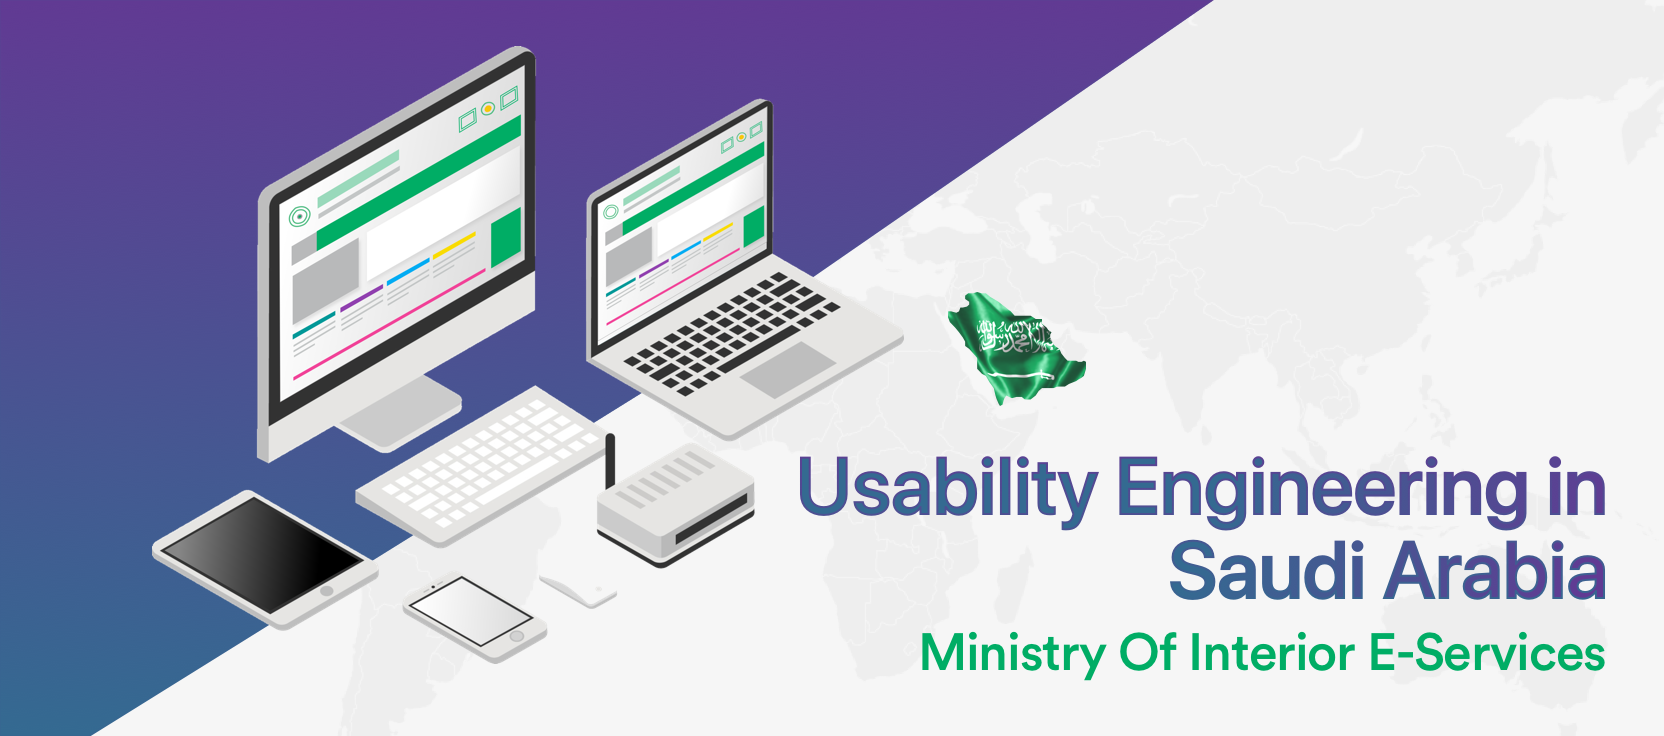 Usability Engineering In Saudi Arabia: Ministry Of Interior E Services